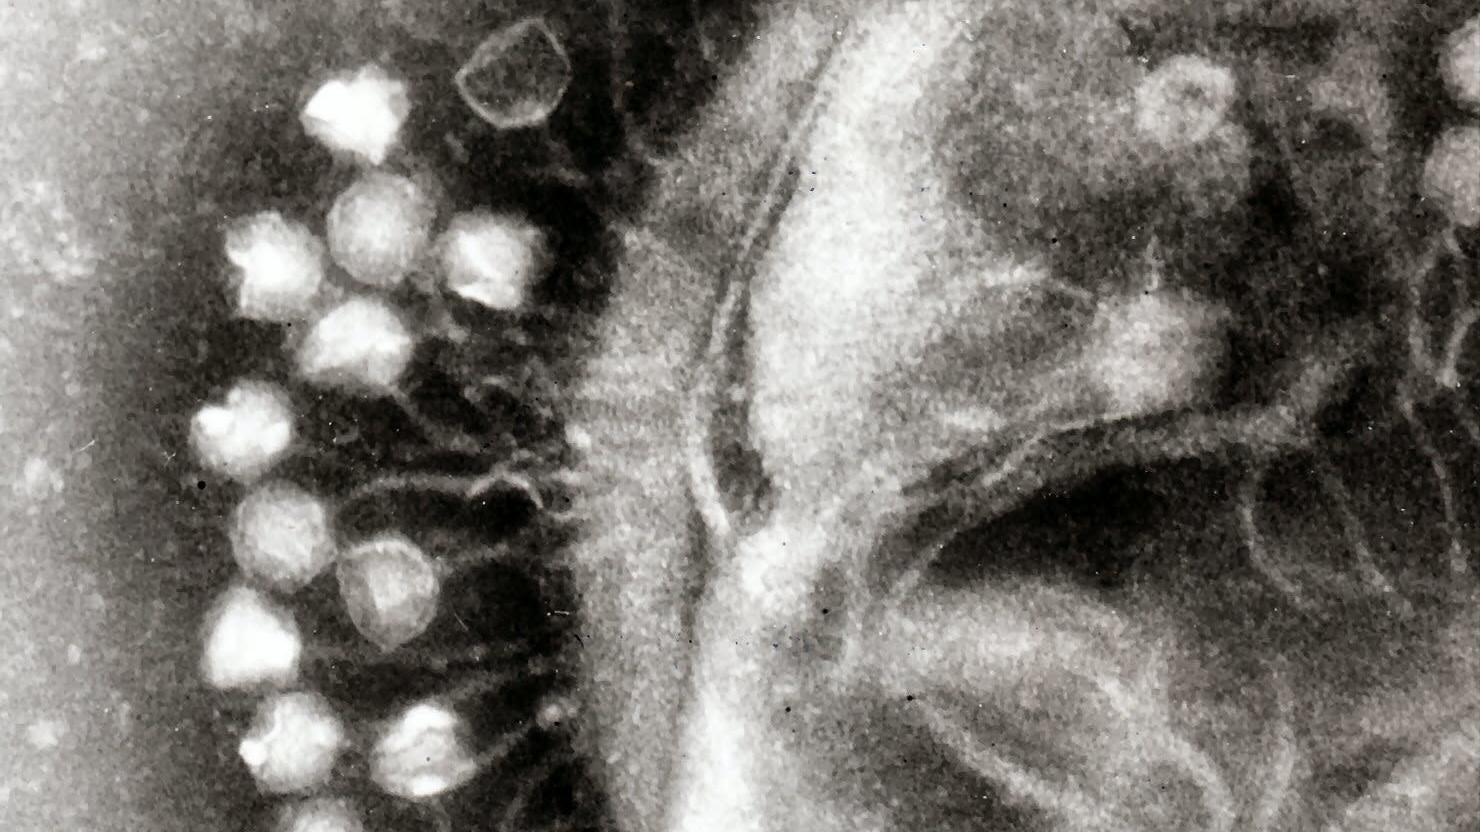 Scientists Find Over 300 'Huge' Viruses With Strange Abilities